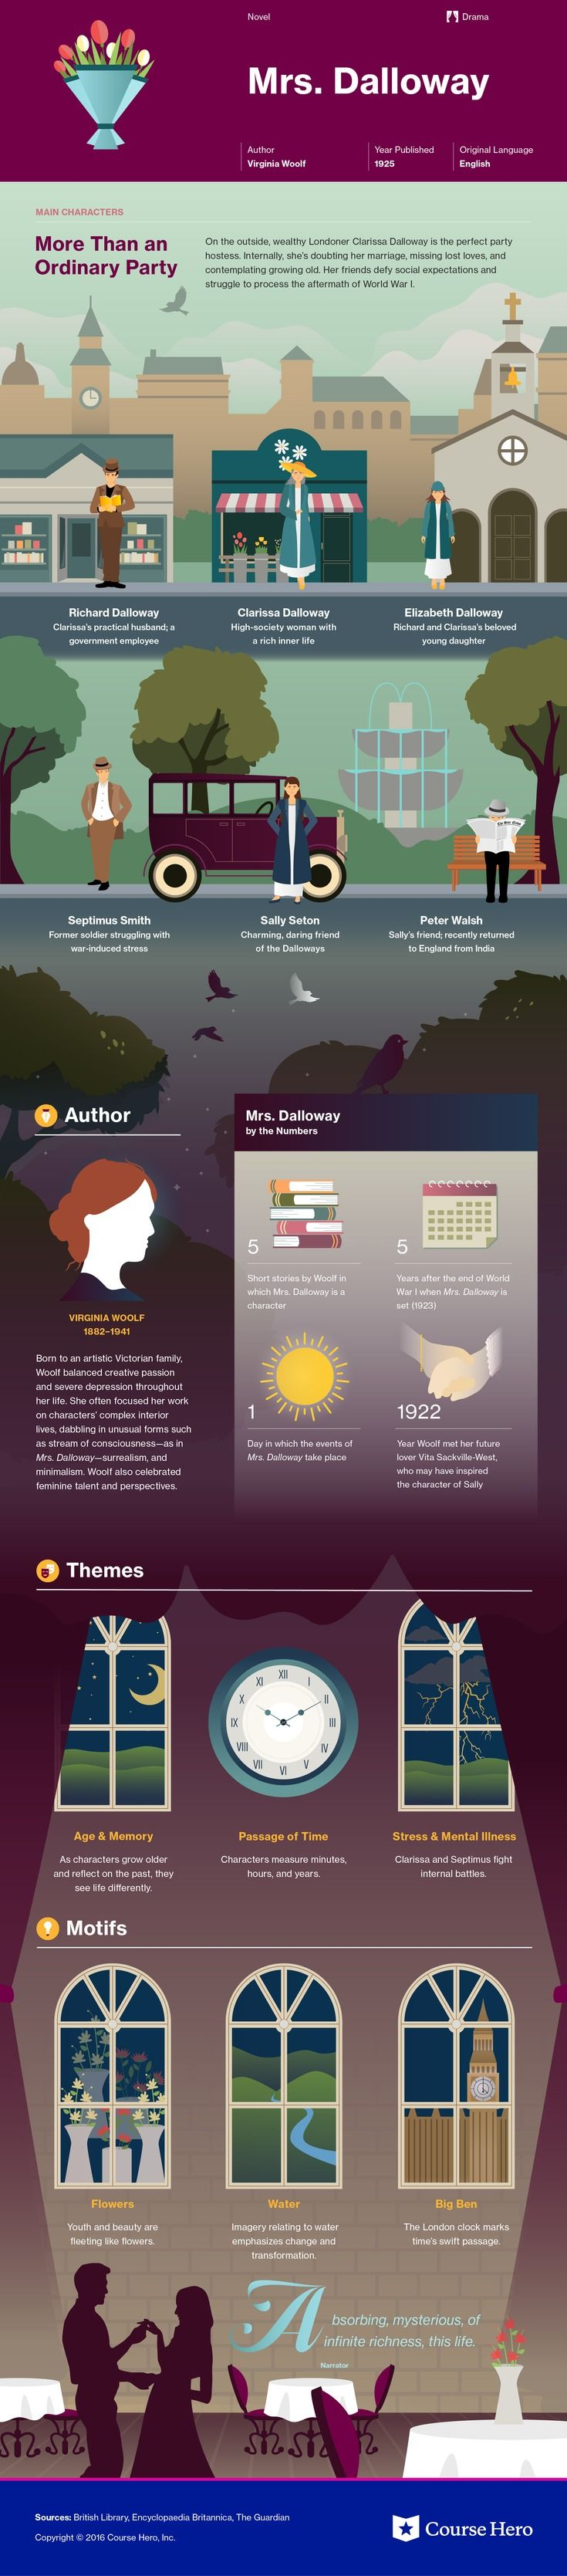 This @CourseHero infographic on Mrs. Dalloway is both visually stunning and…